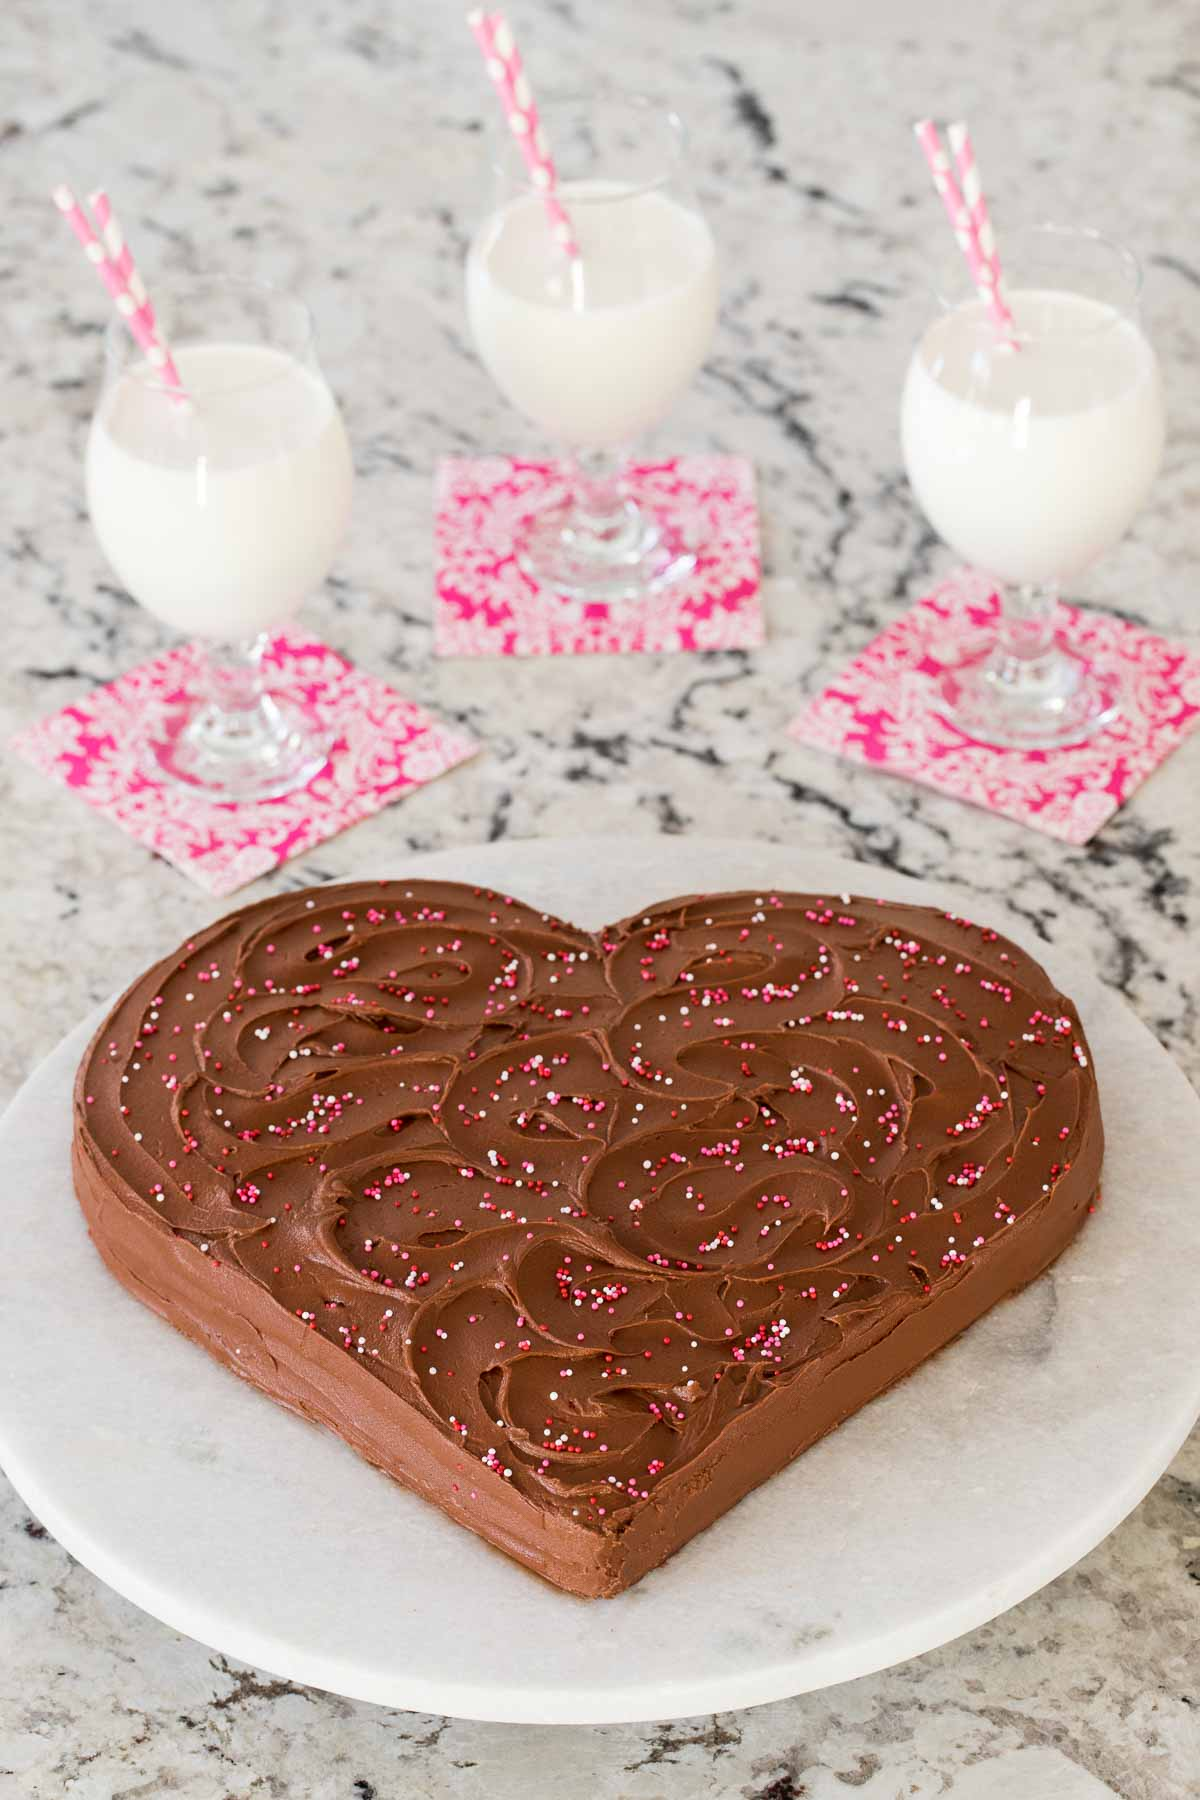 Easy One-Bowl Chocolate Heart Cake